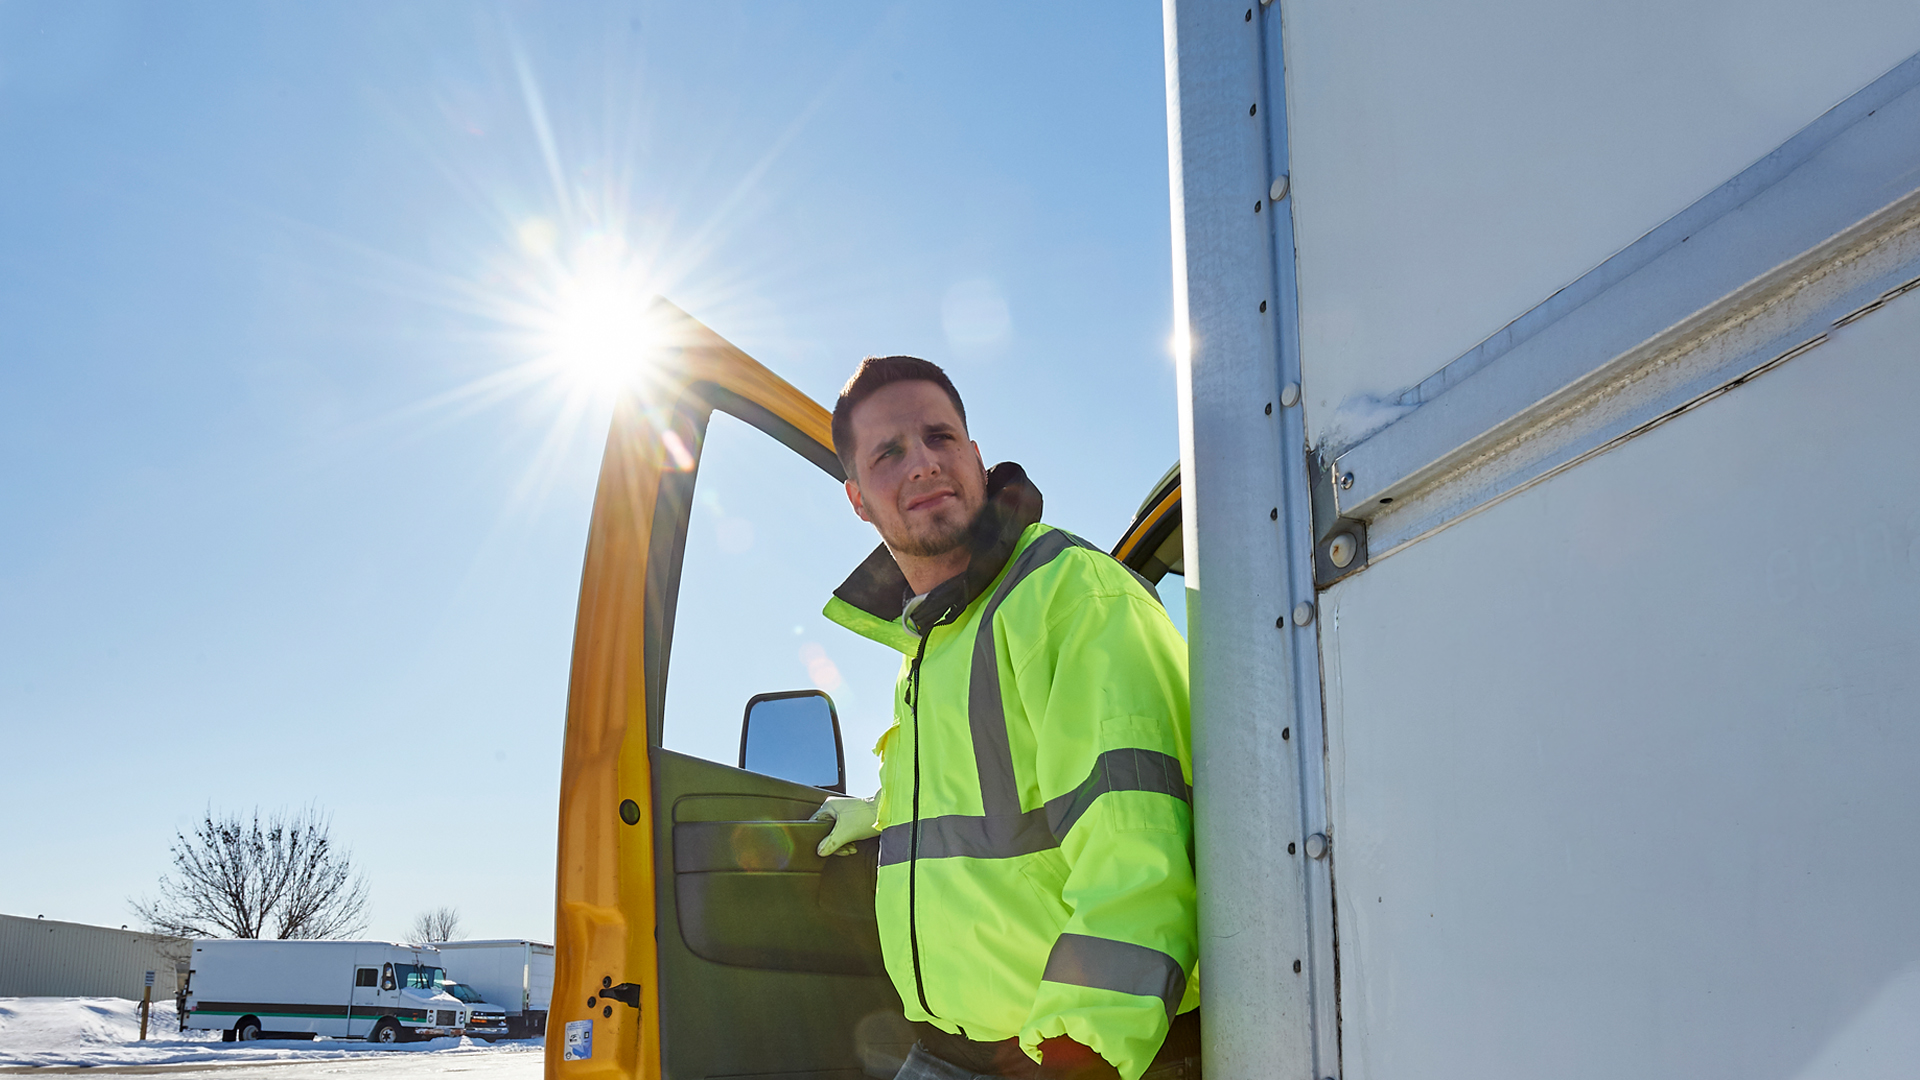 Safe and Smart Non-CDL Driver Training for Inexperienced Drivers: Becoming a Professional Driver